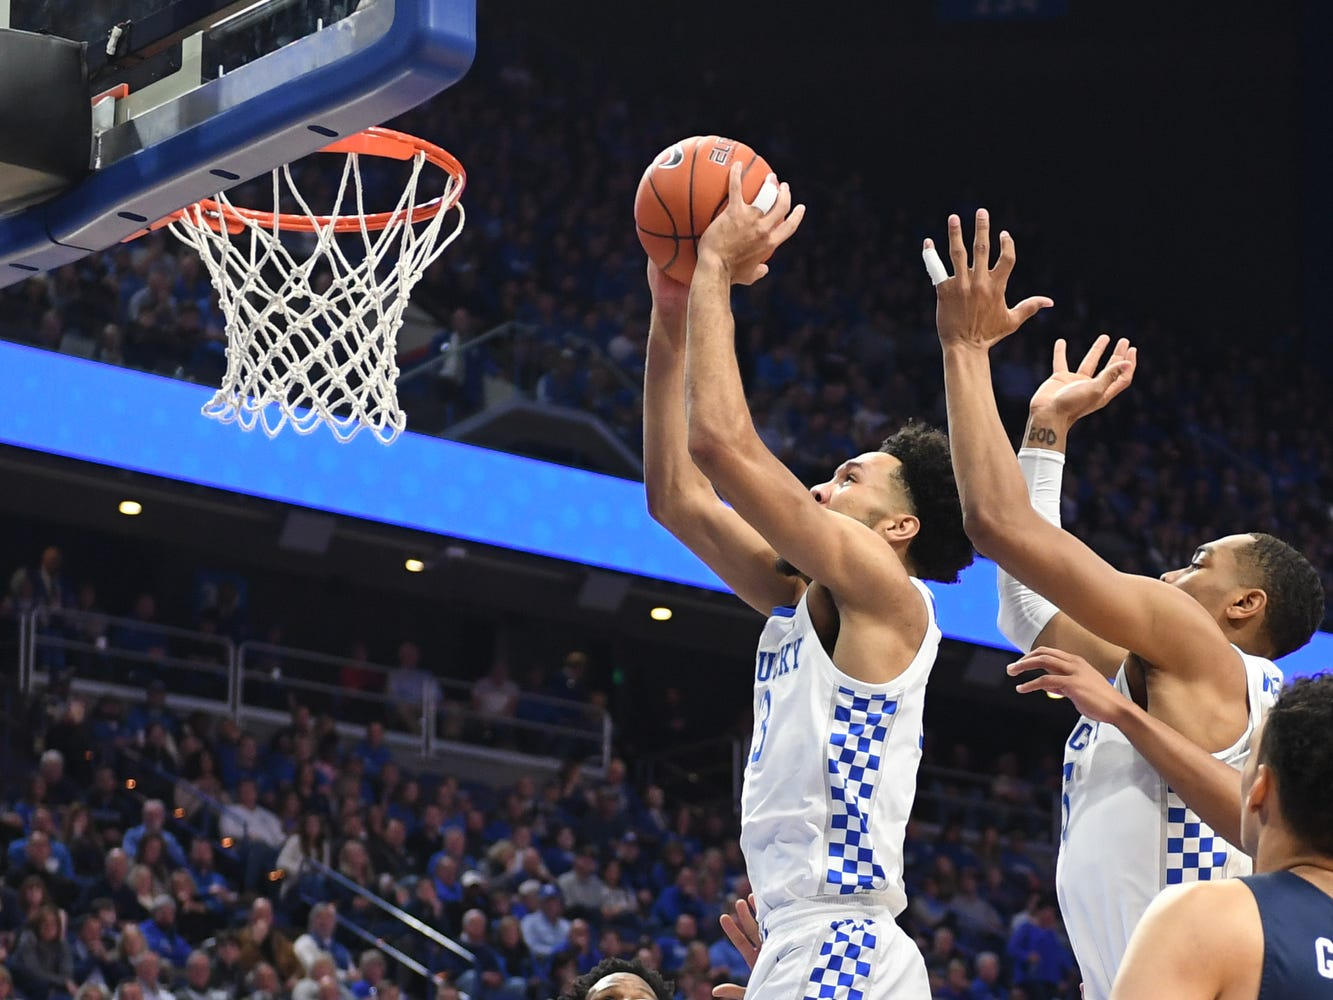 UK F EJ Montgomery puts the ball up after a rebound during the University of Kentucky men's basketball game against UNC Greensboro at Rupp Arena in Lexington, Kentucky on Saturday, December 1, 2018.